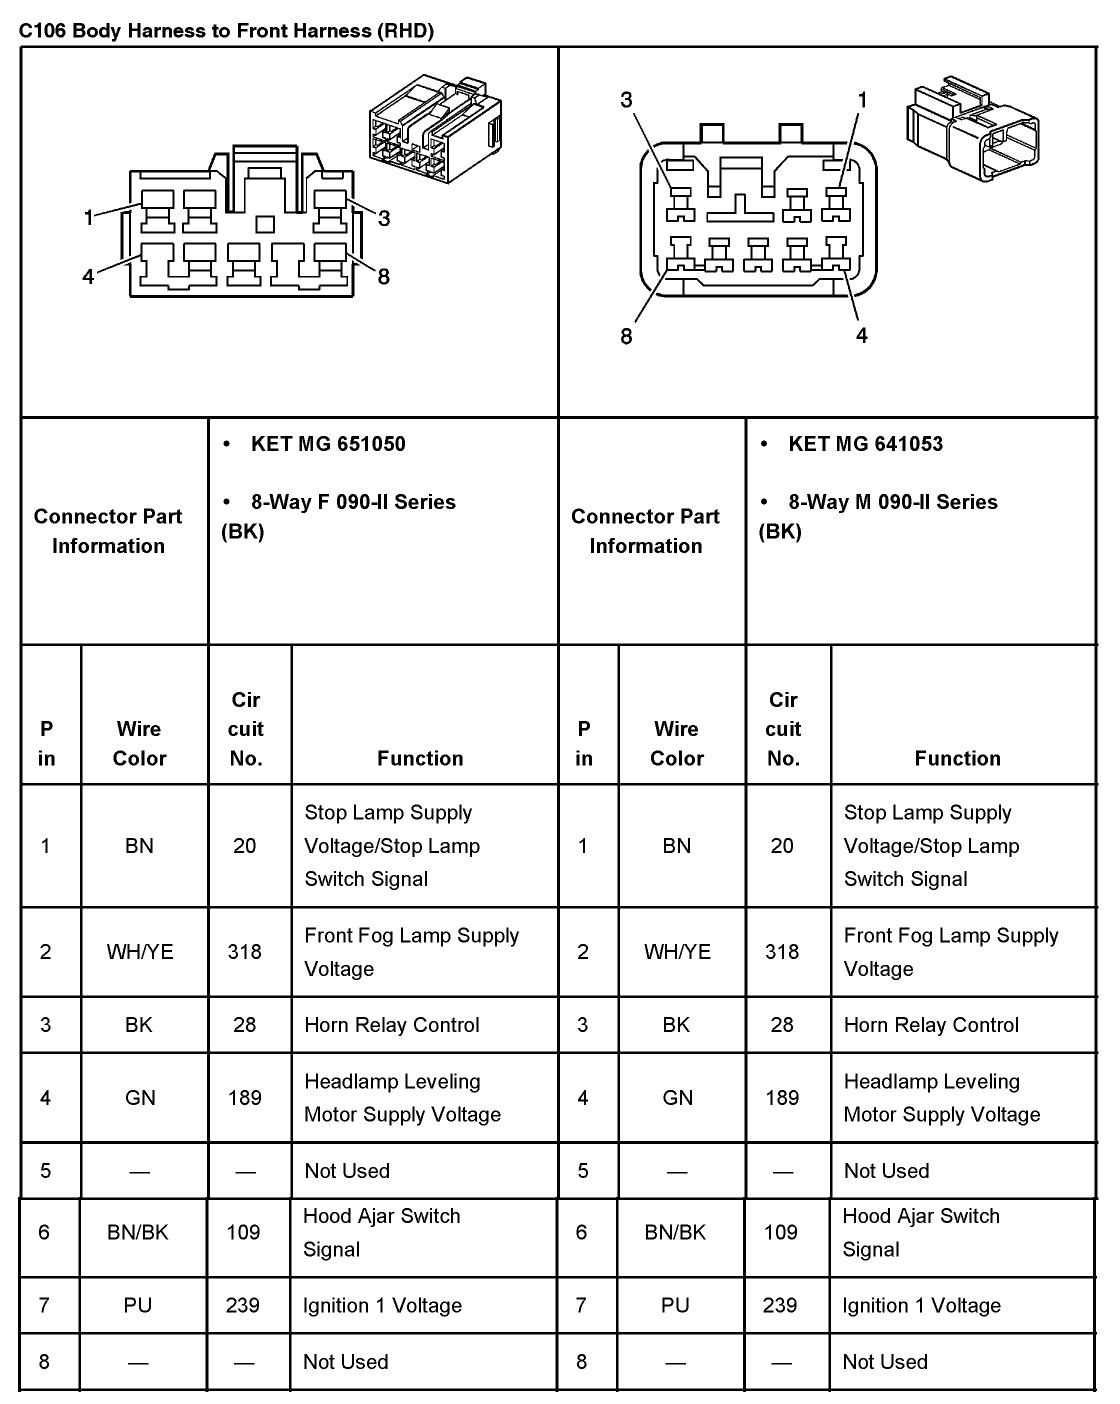 hight resolution of 2006 chevy aveo fuse box wiring library rh 4 ayazagagrup org 2010 chevy aveo stereo wiring diagram 2010 chevy aveo fuse box location